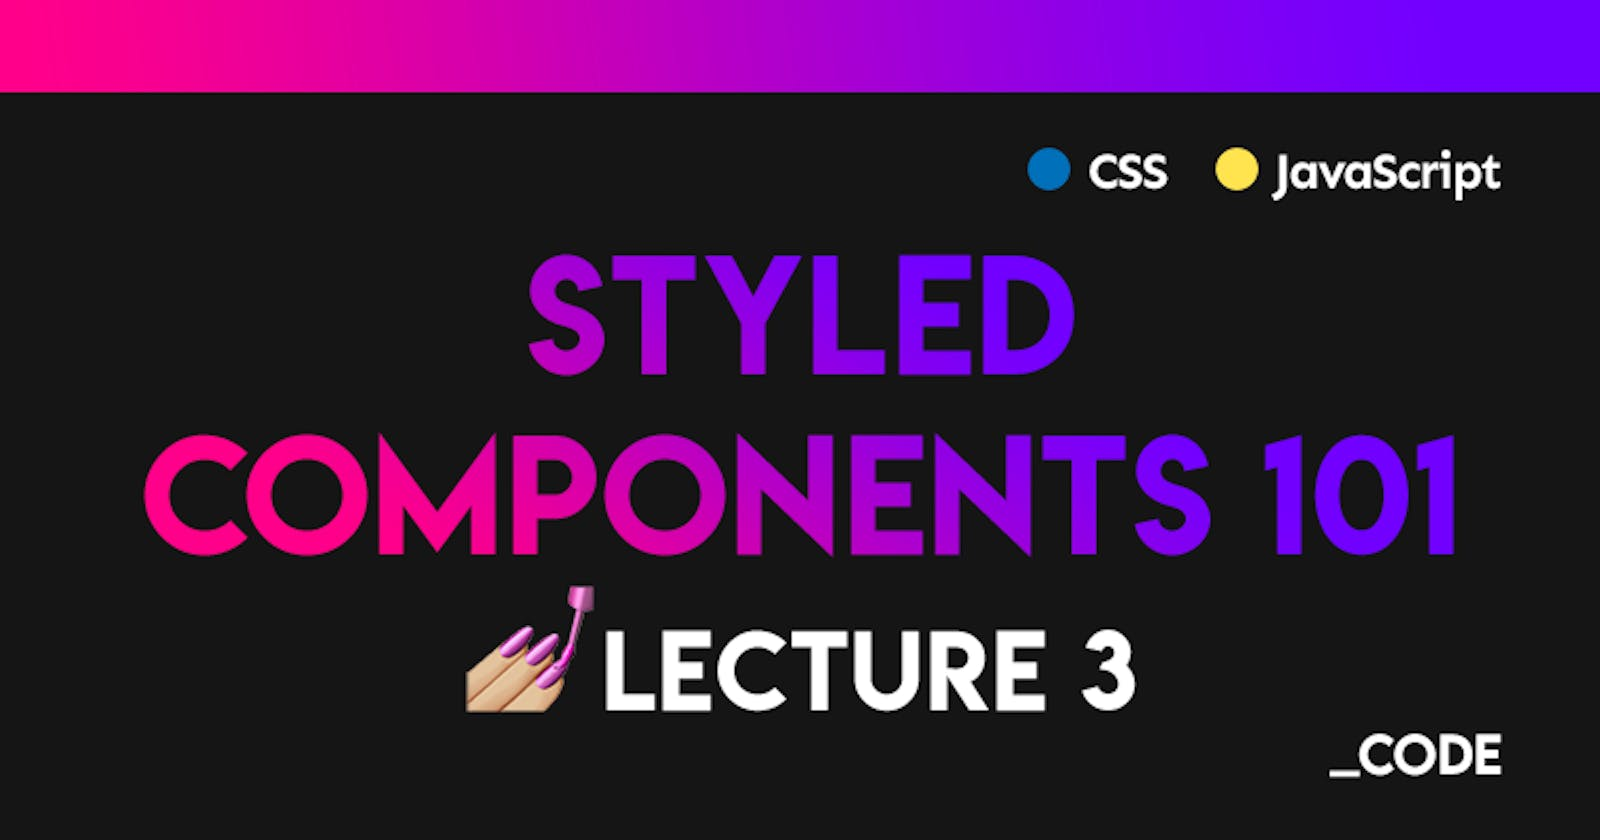 Styled Components 101 💅 Lecture 3: SSR with Next.js + Custom Icon Fonts 😍